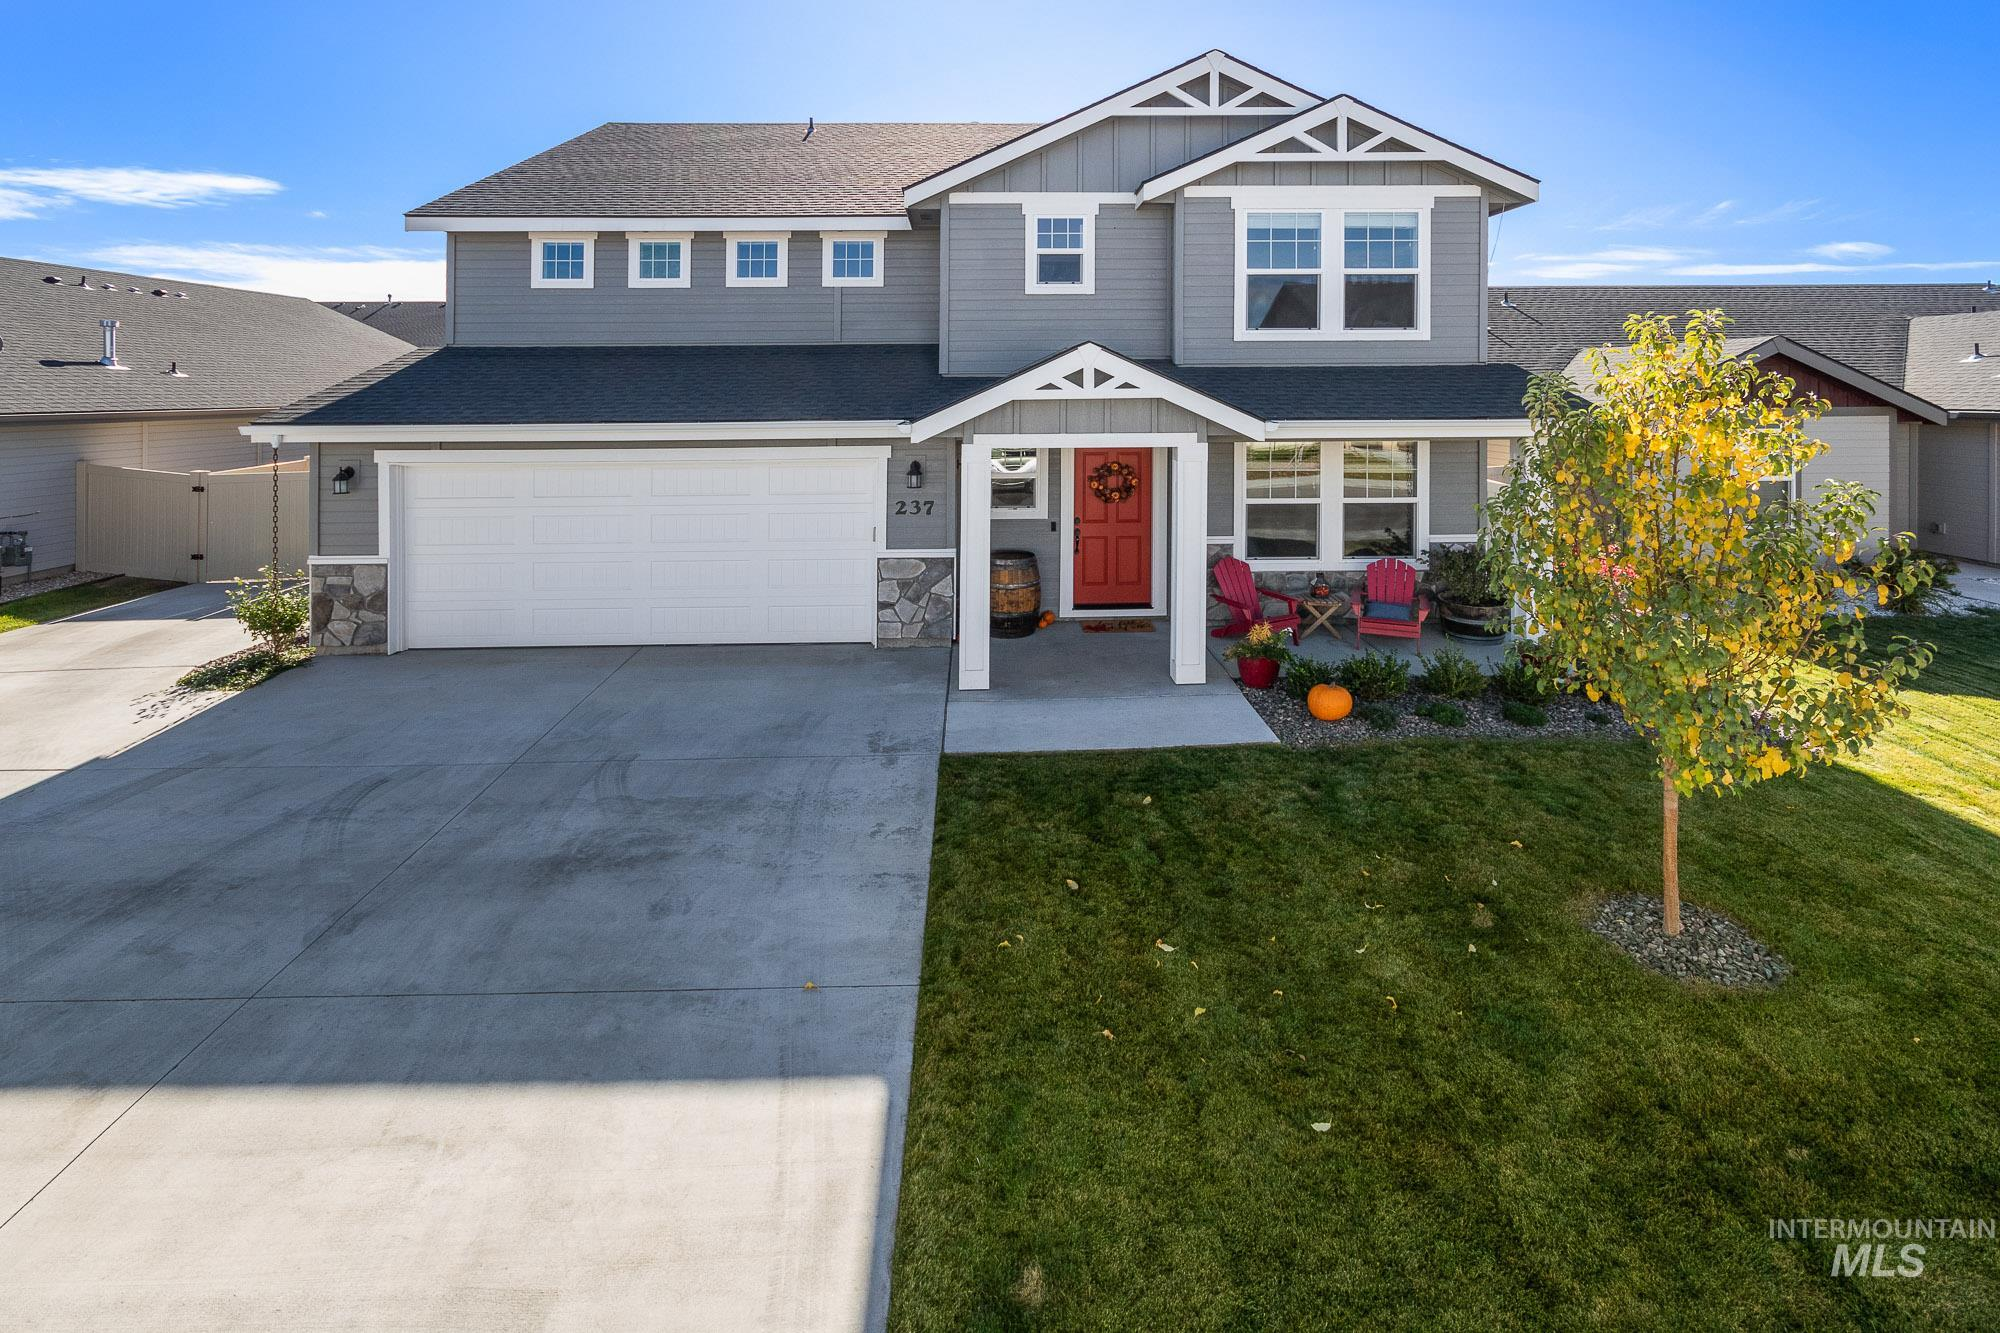 237 W Halpin, Meridian, Idaho 83646-3709, 3 Bedrooms, 2.5 Bathrooms, Residential For Sale, Price $489,000, 98784771